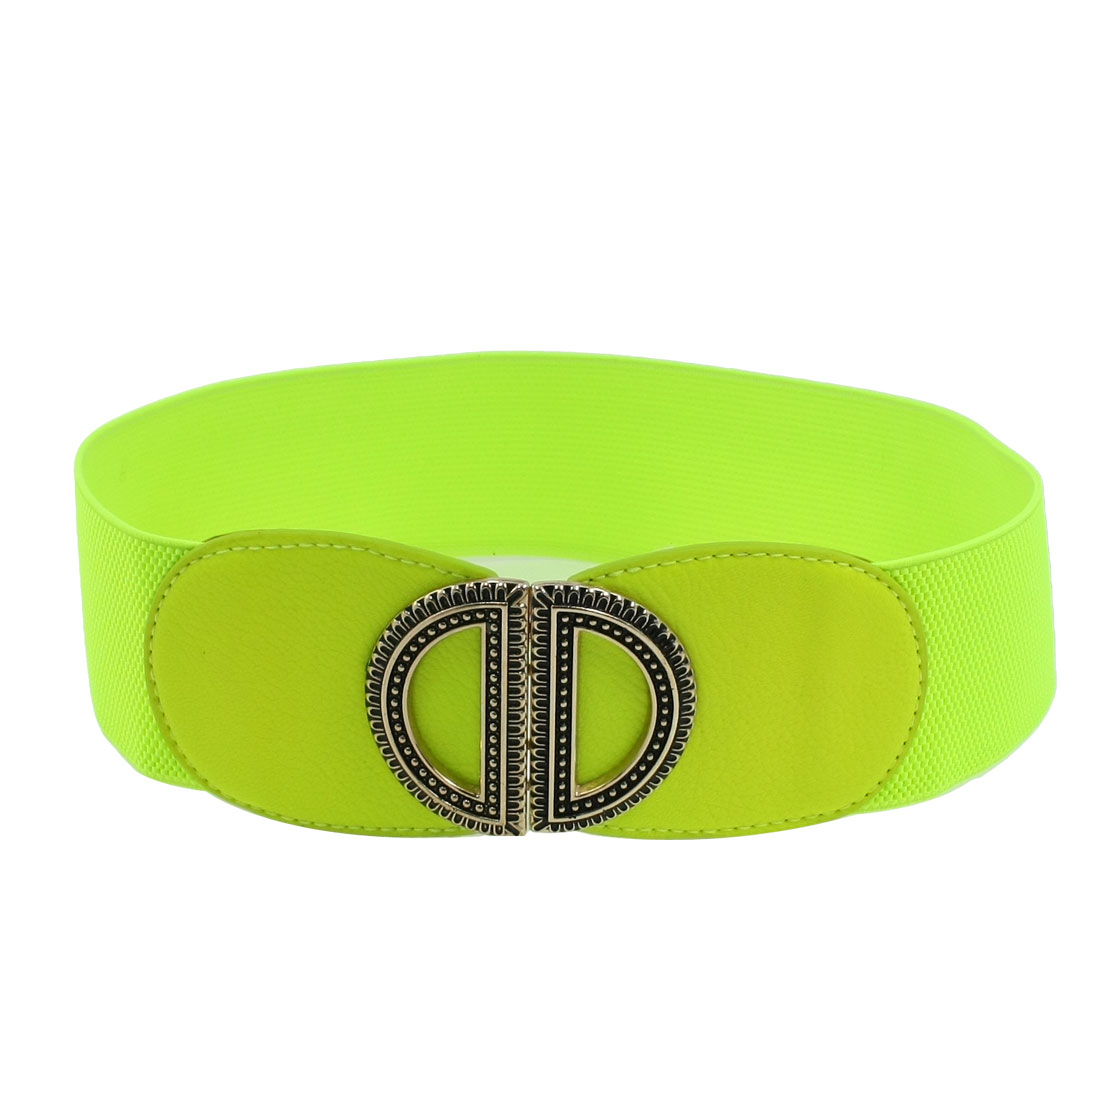 Metal Dual D Interlocking Buckle Yellow Green Elastic Waist Belt for Ladies